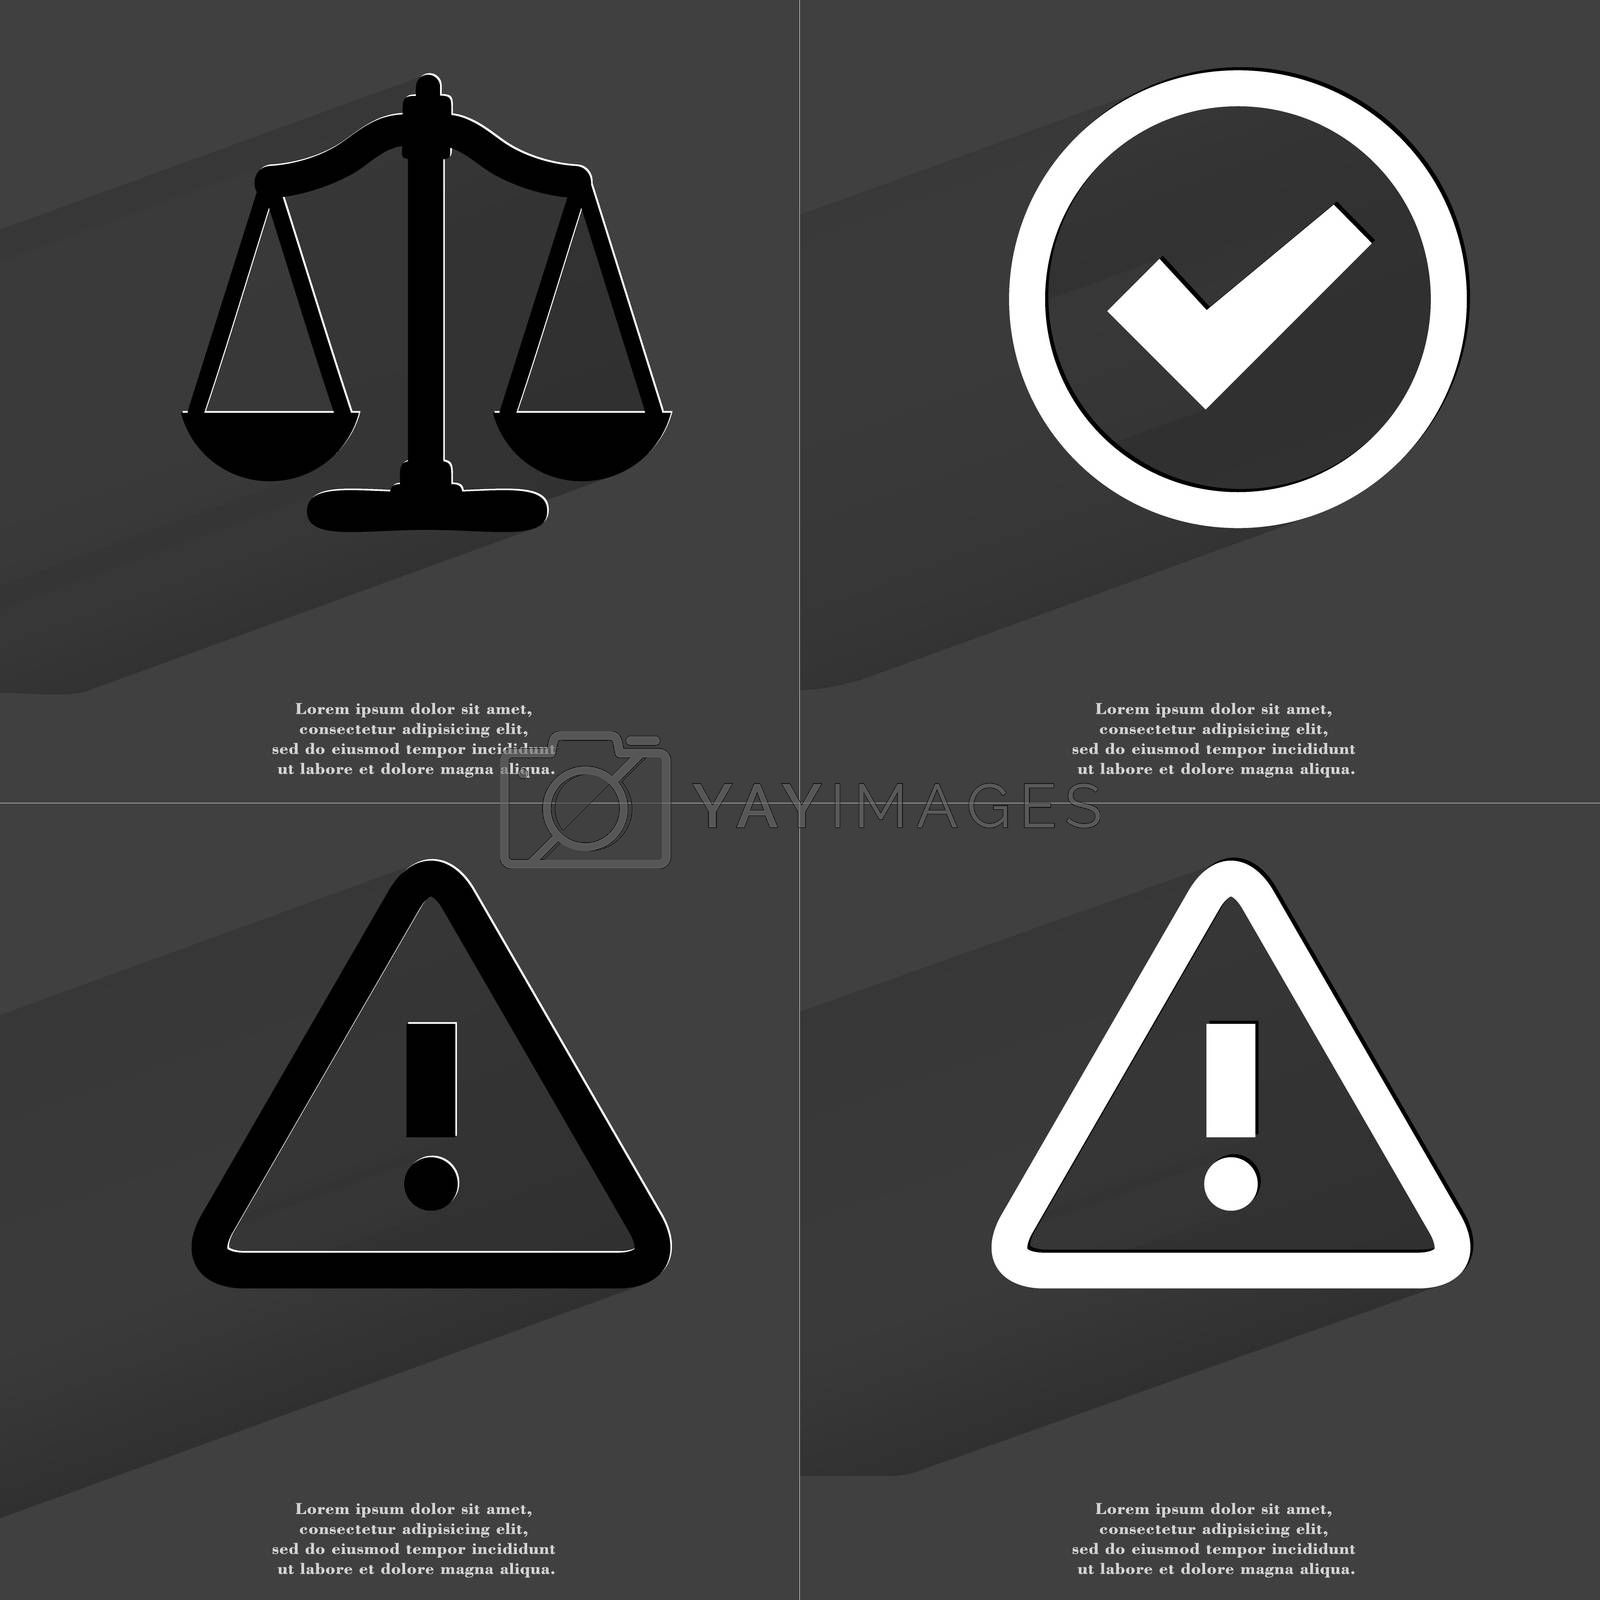 Royalty free image of Scales, Tick sign, Warning sign. Symbols with long shadow. Flat design by serhii_lohvyniuk